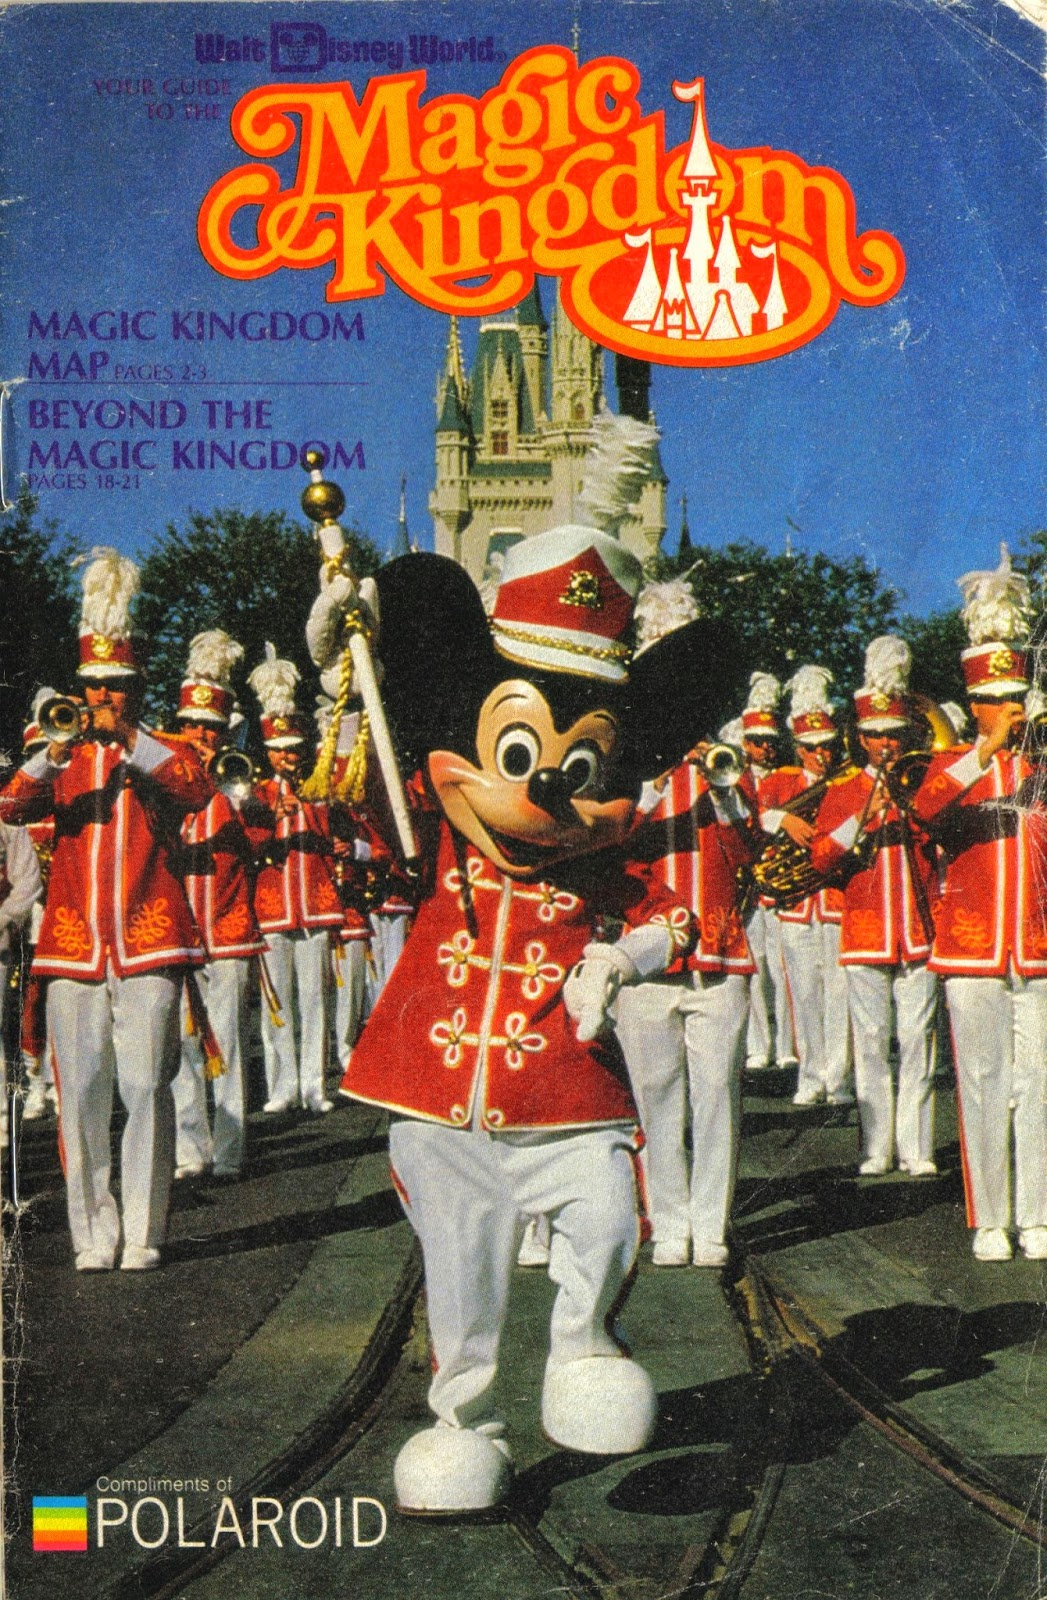 Below: A 1983 Brochure For Walt Disney Worldu0027s Magic Kingdom, Disneyu0027s  First Theme Park In Orlando, Opened On 1 October 1971: